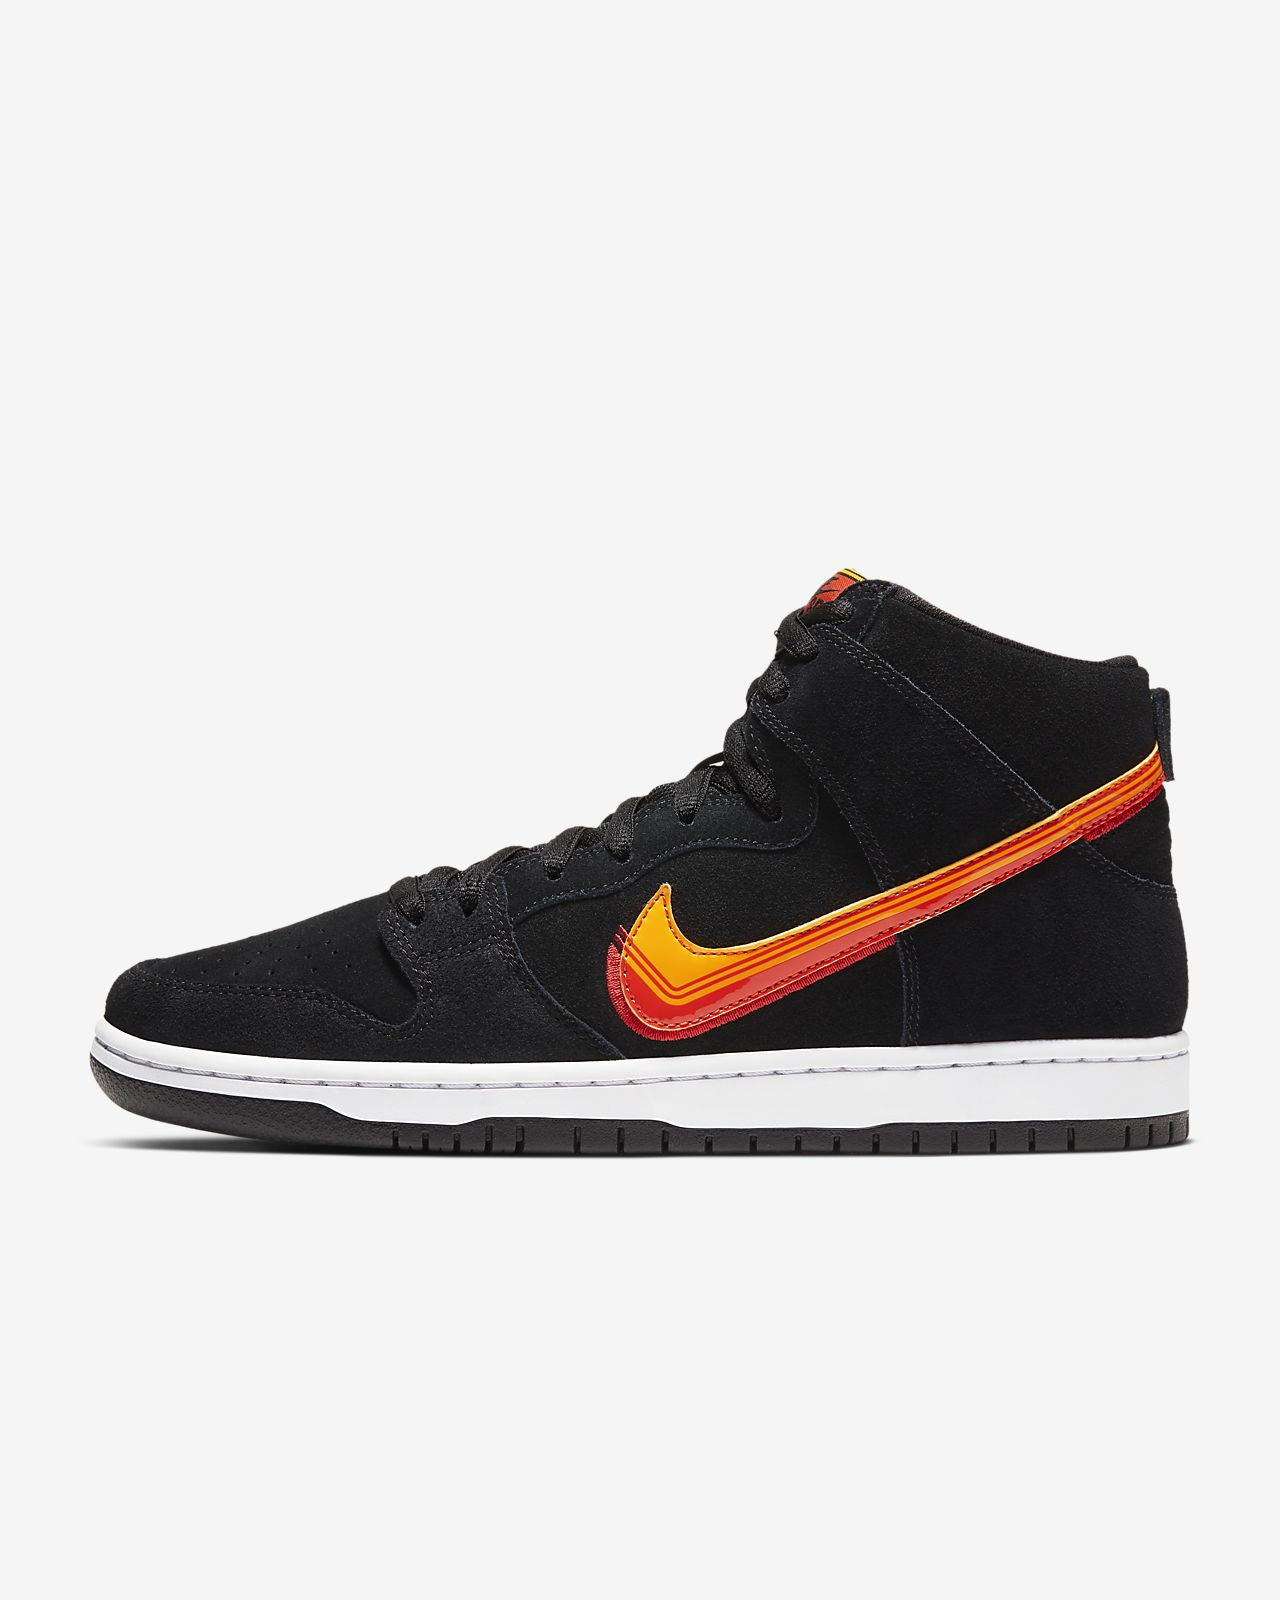 Nike SB Dunk High Pro Men's Skate Shoe